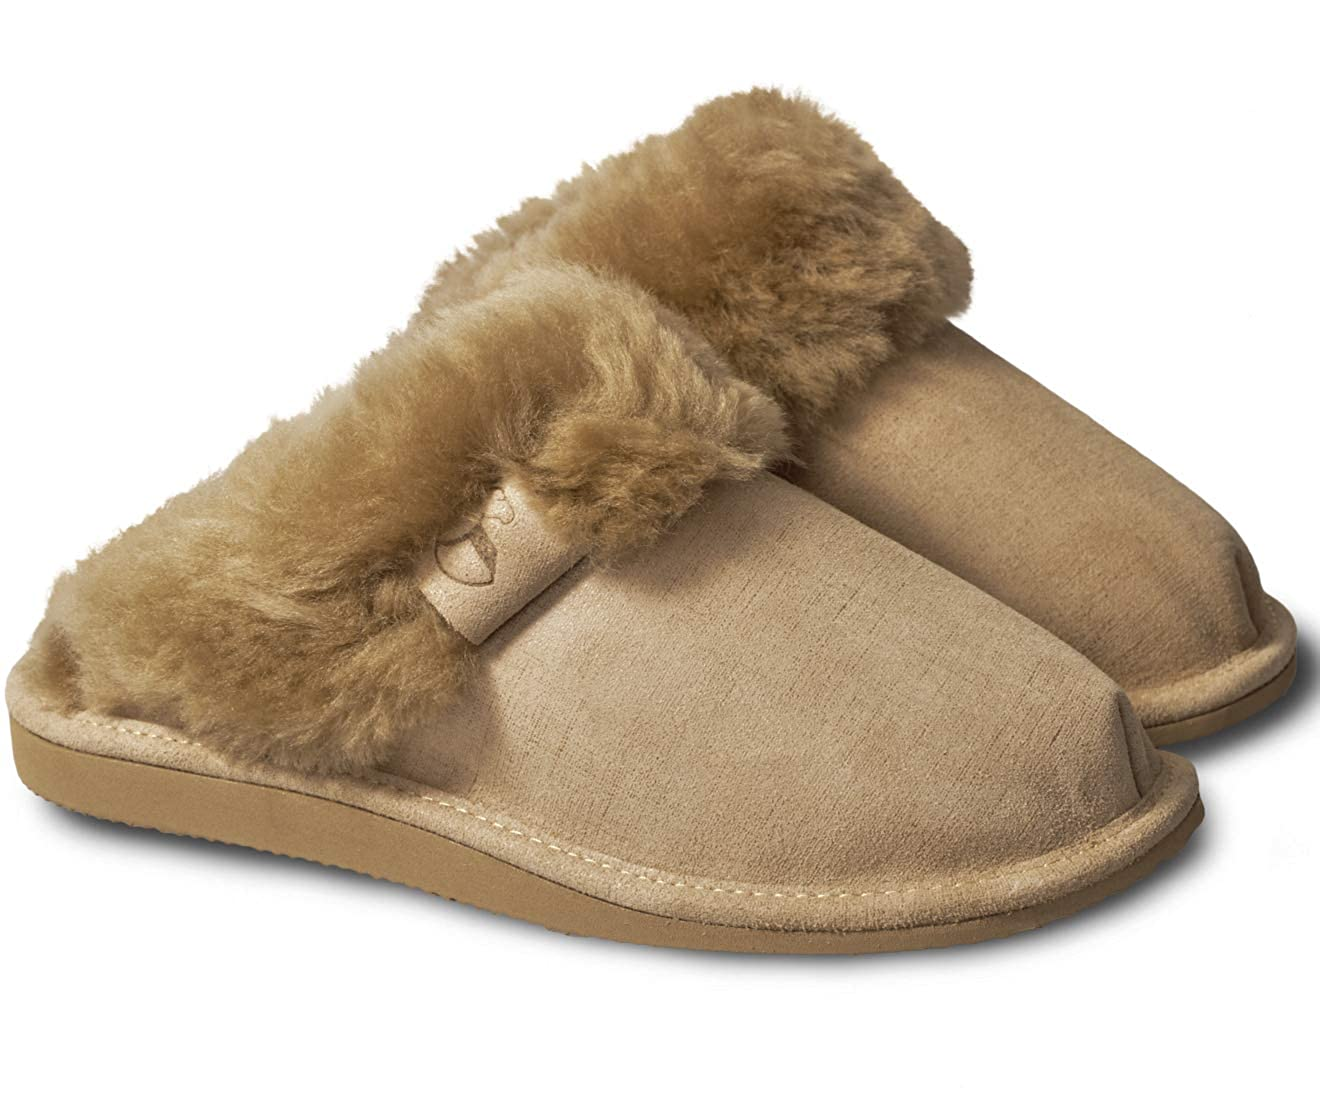 817330b3b359 ESTRO Sheepskin Womens Slippers Ladies Wool - Leather Mule Boots Slides  Warm Fleece Fur Fluffy Booties Intimo  Amazon.co.uk  Shoes   Bags